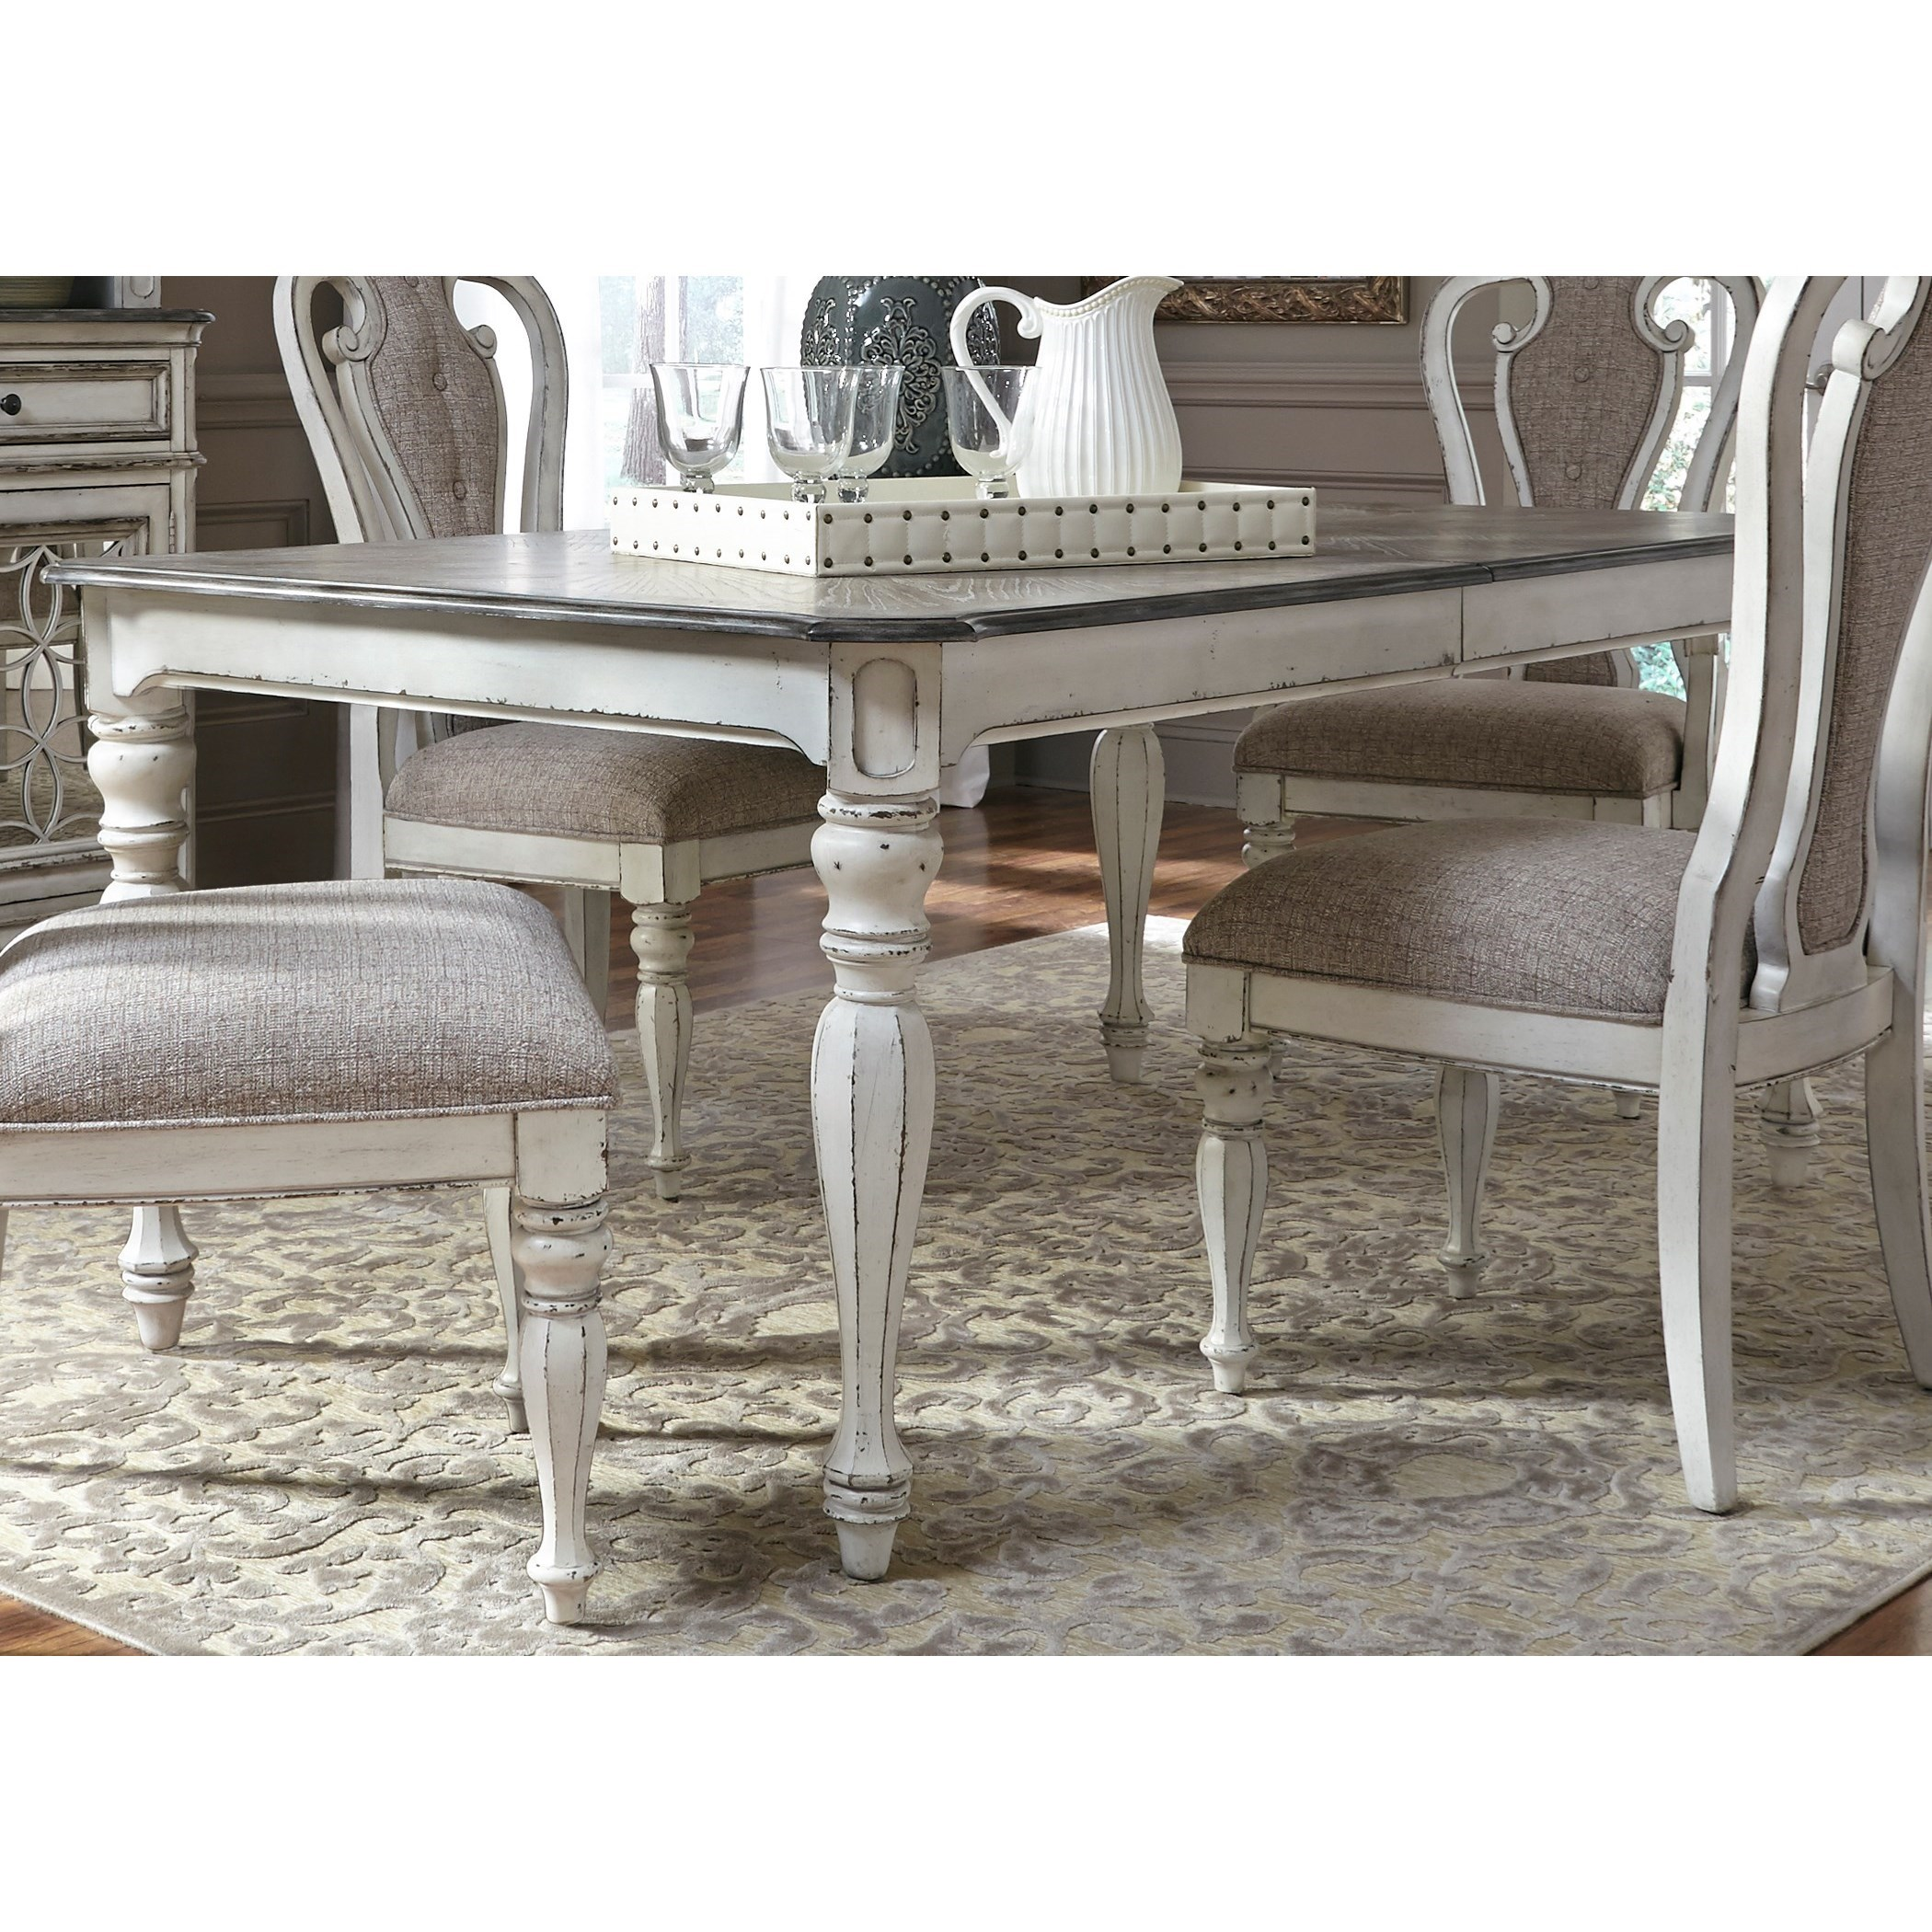 Liberty Furniture Magnolia Manor Dining Rectangular Leg Table with Leaf - Item Number: 244-T4490